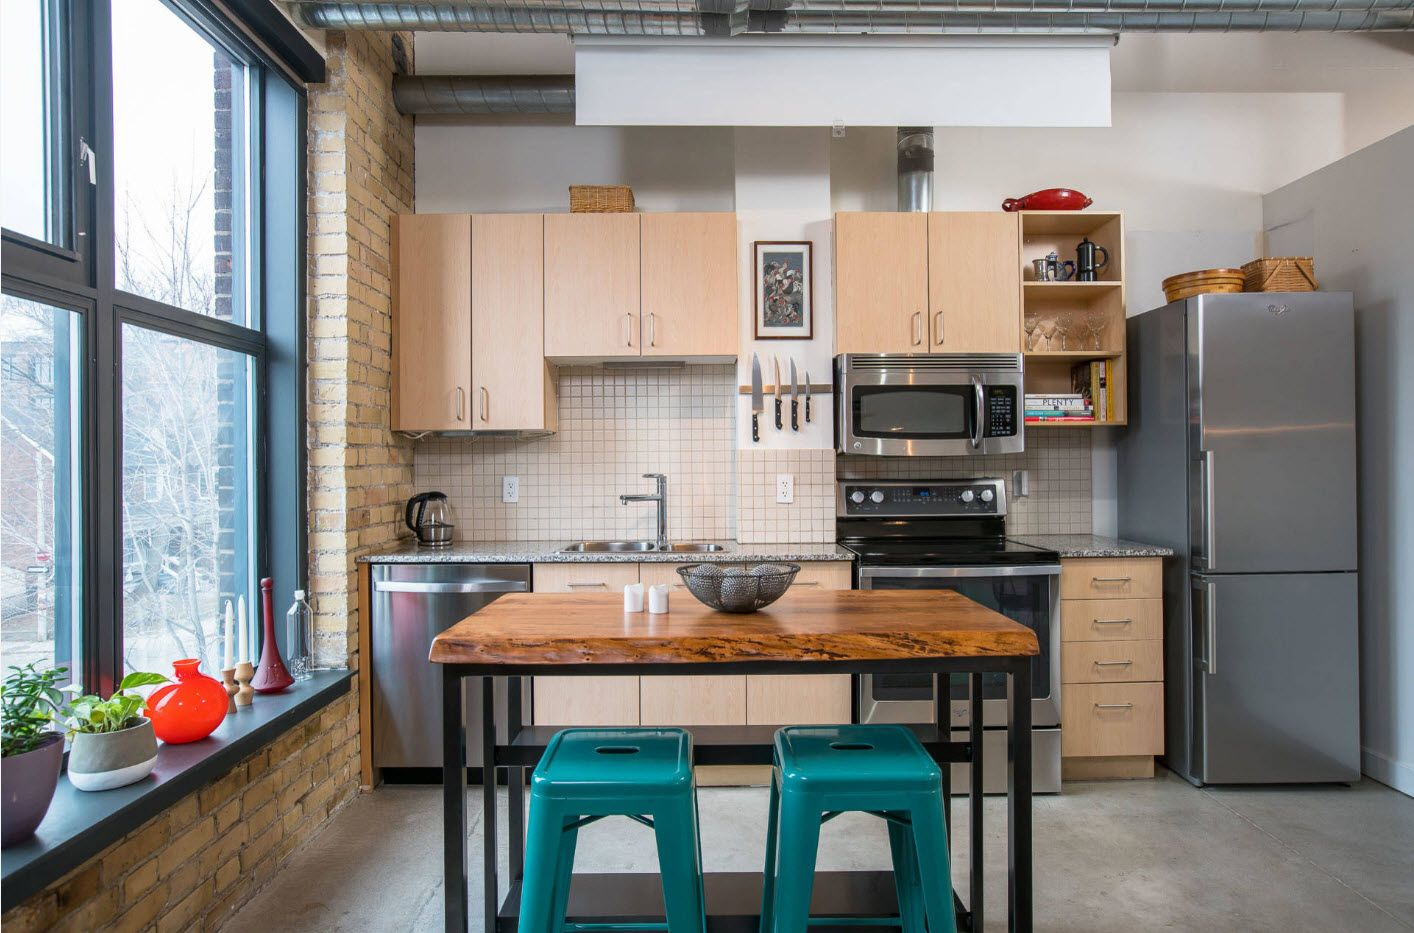 Wooden notes in the kitchen with brickwork and green plastic chairs